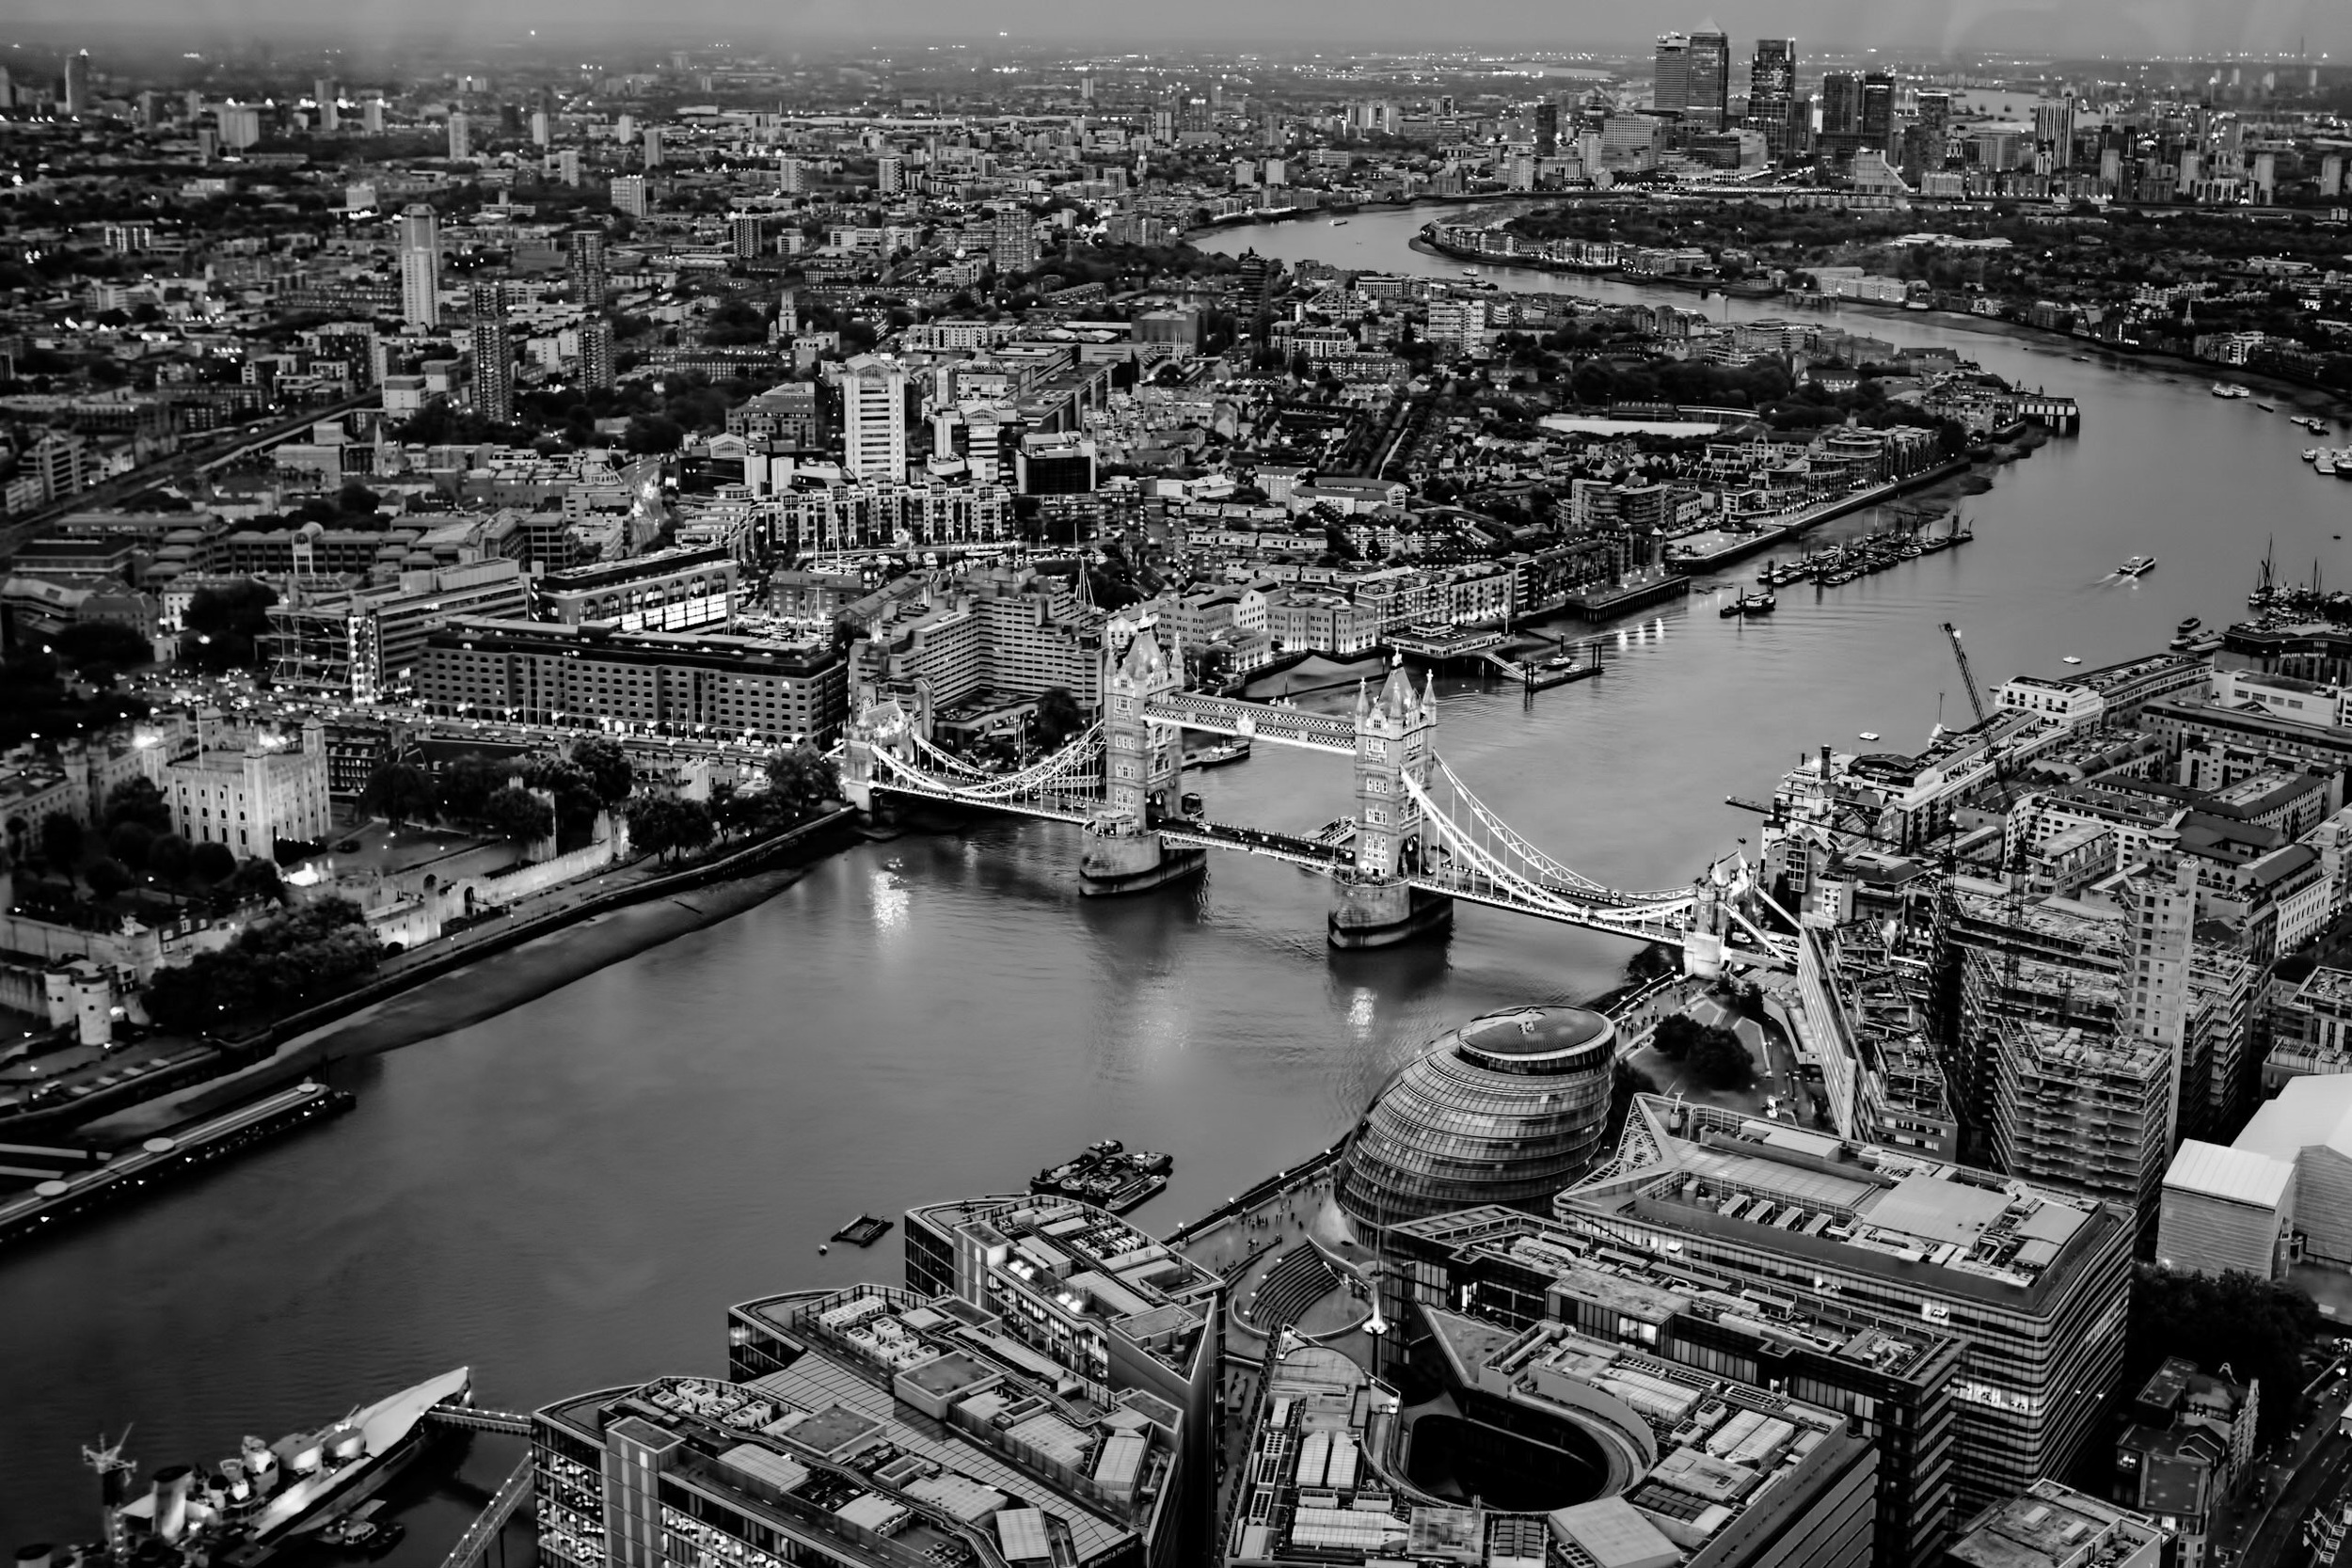 Tower Bridge viewed from the London Shard